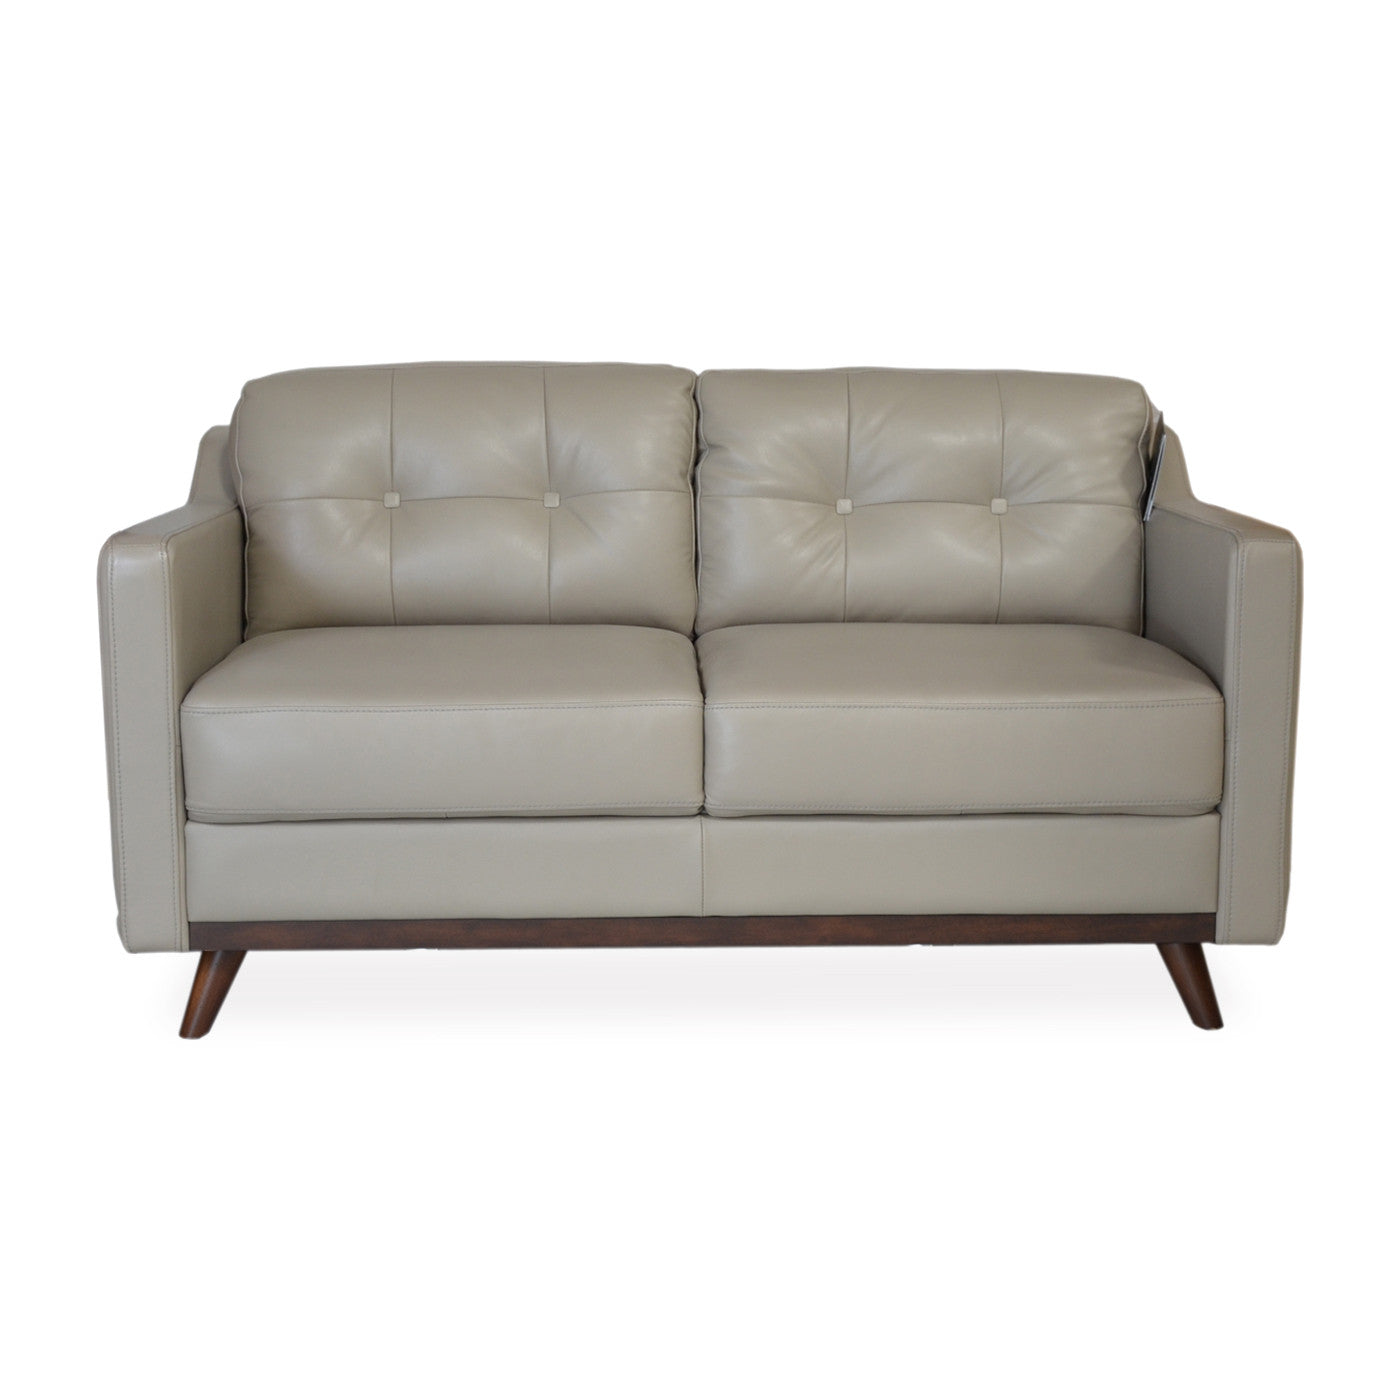 Baker apartment size leather sofa grey apt2b for Apartment size sofa dimensions